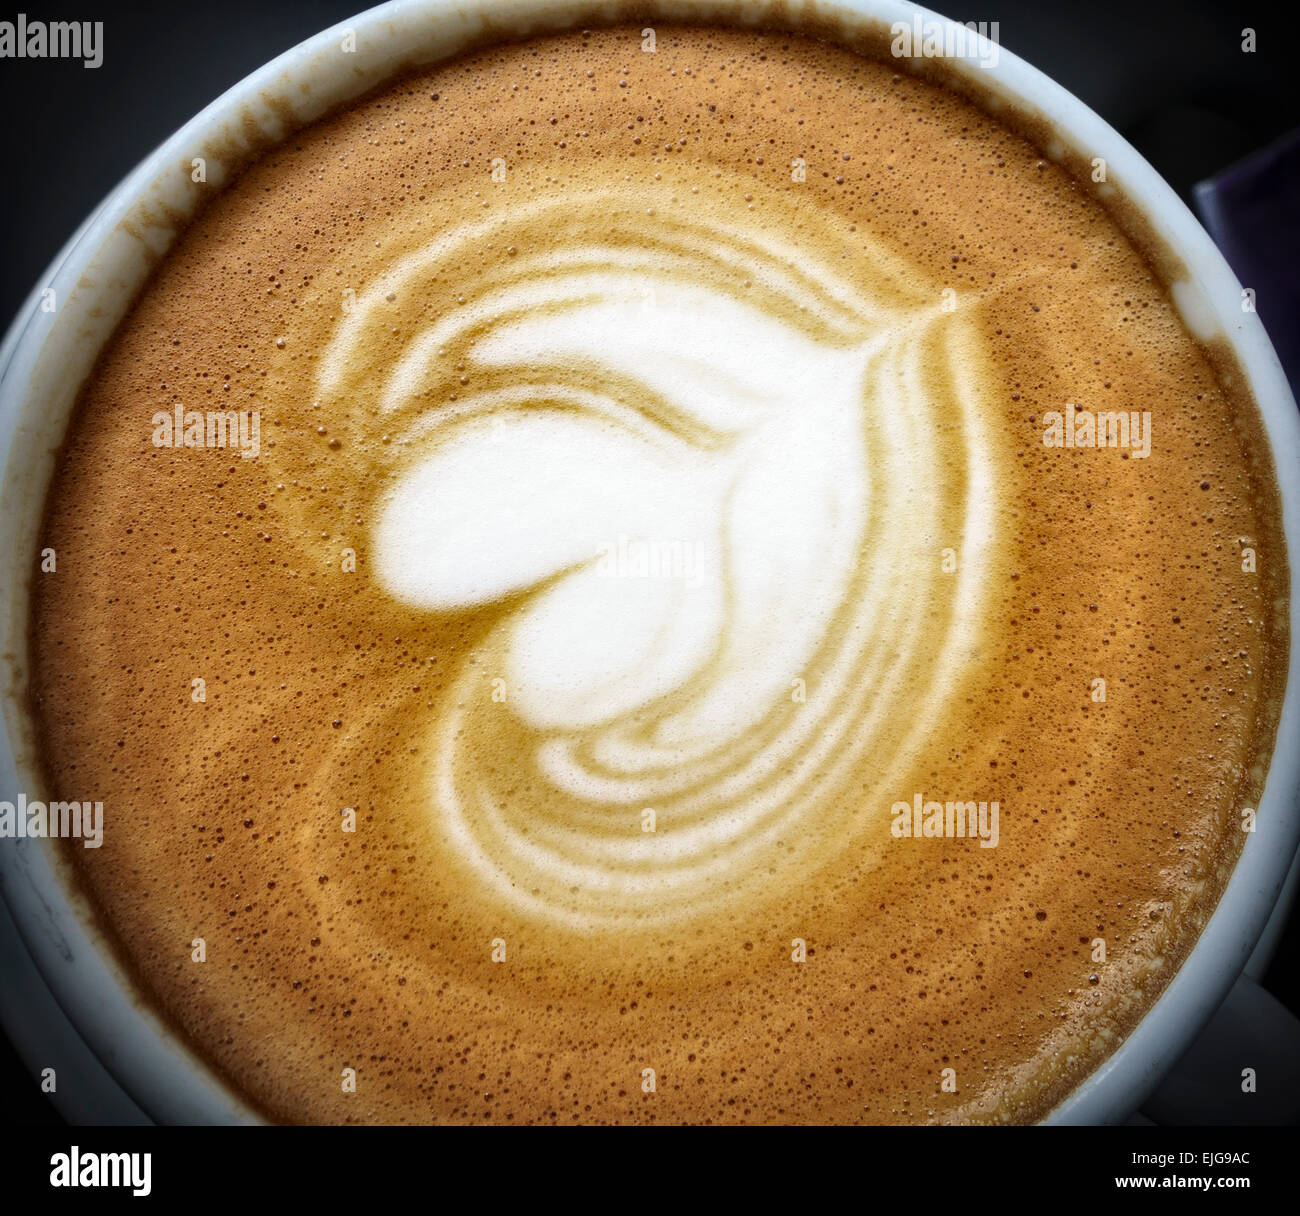 Closeup of the froth on a cappuccino in a china cup - Stock Image